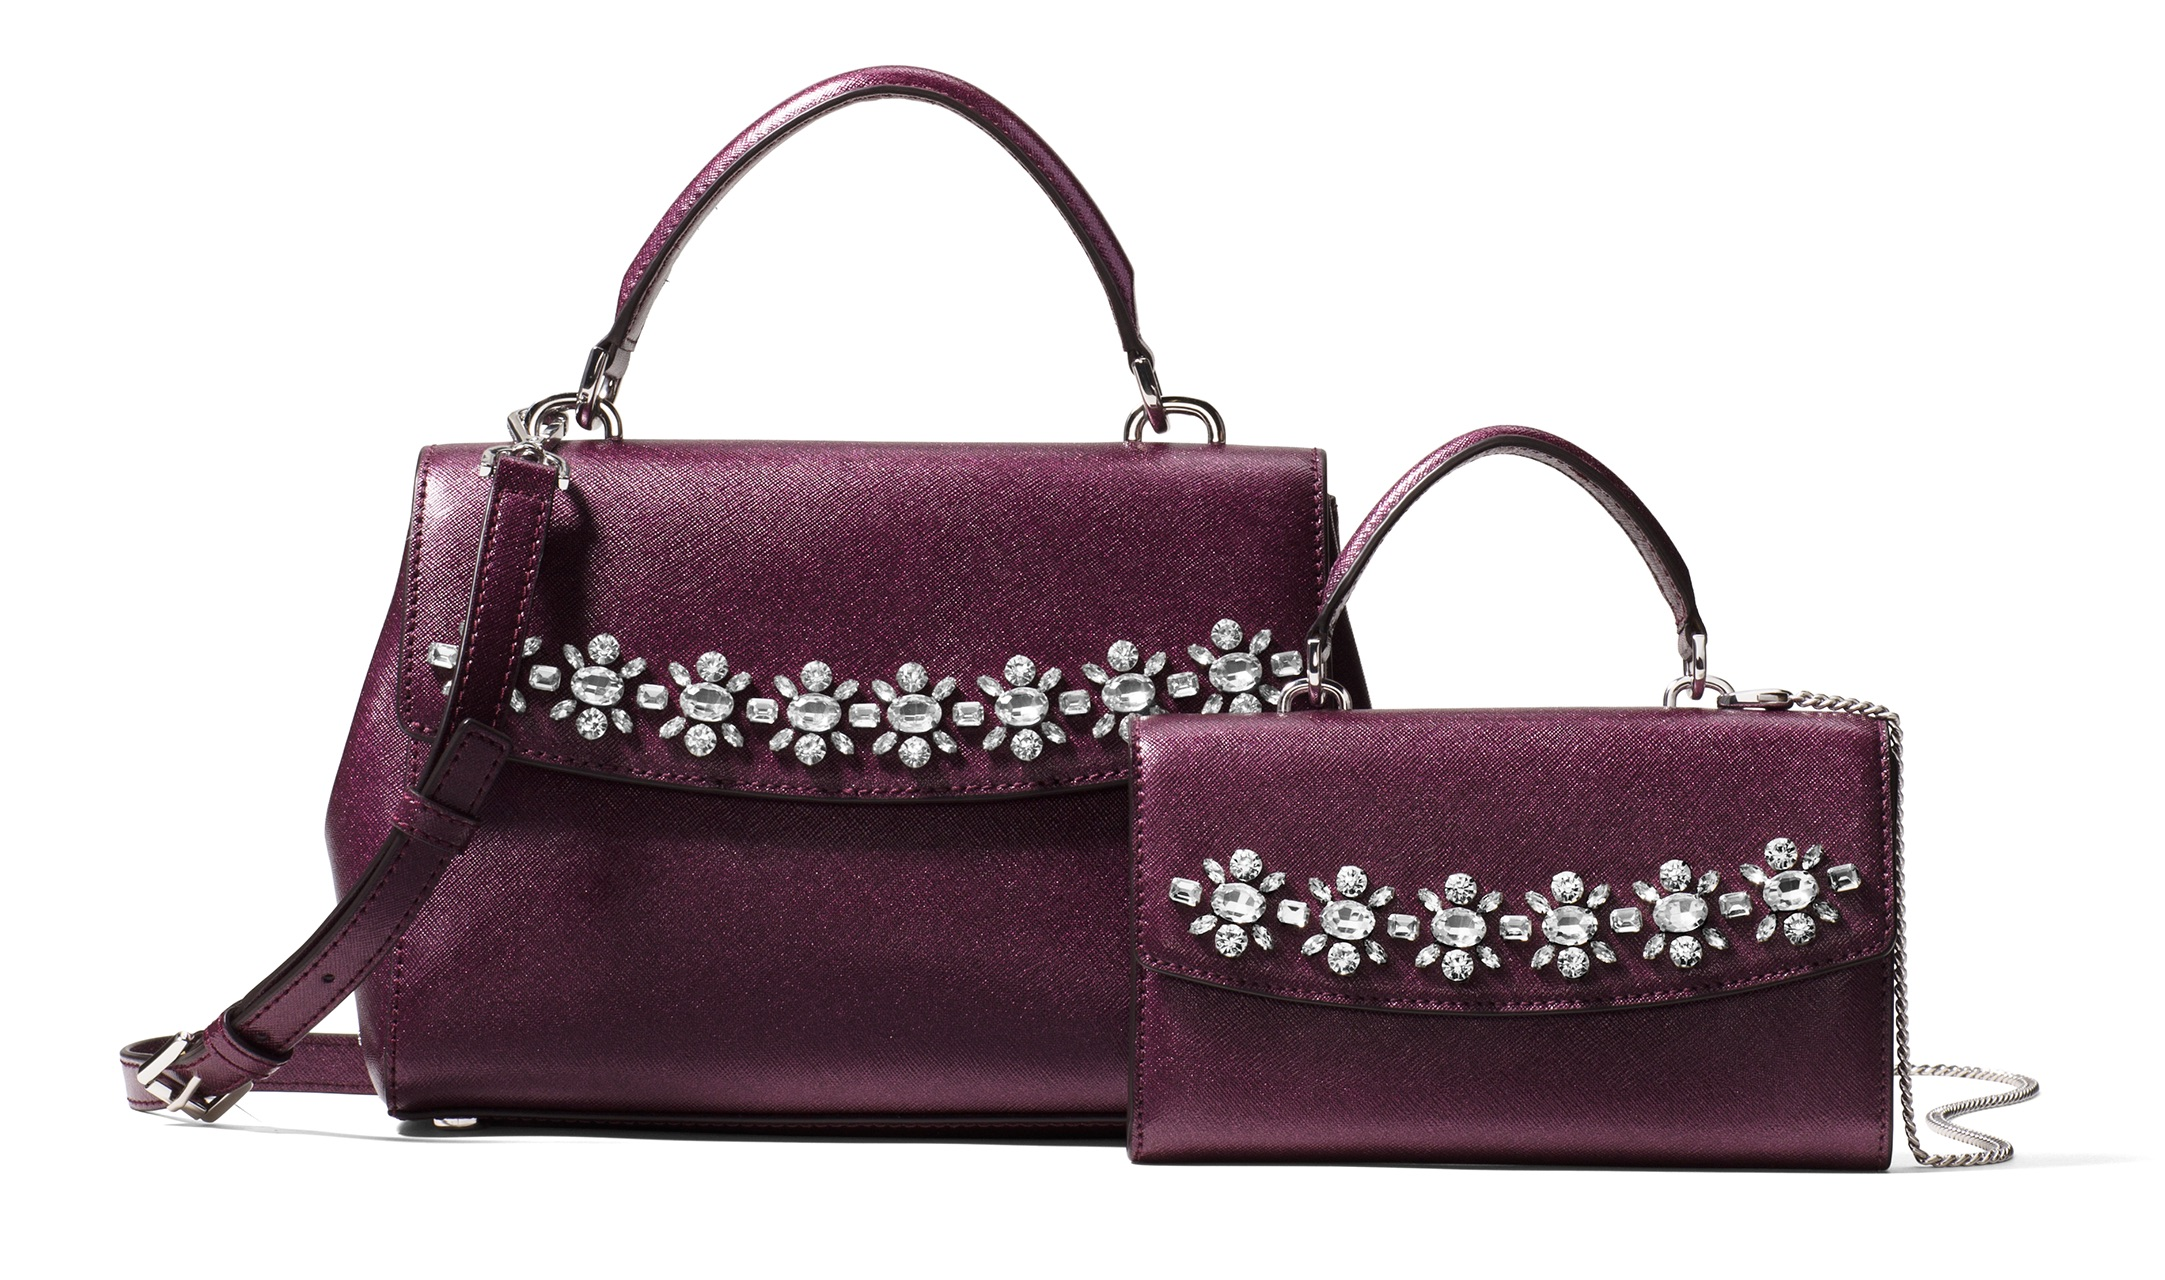 Accessory of the Week: Ava Jewel Capsule Collection